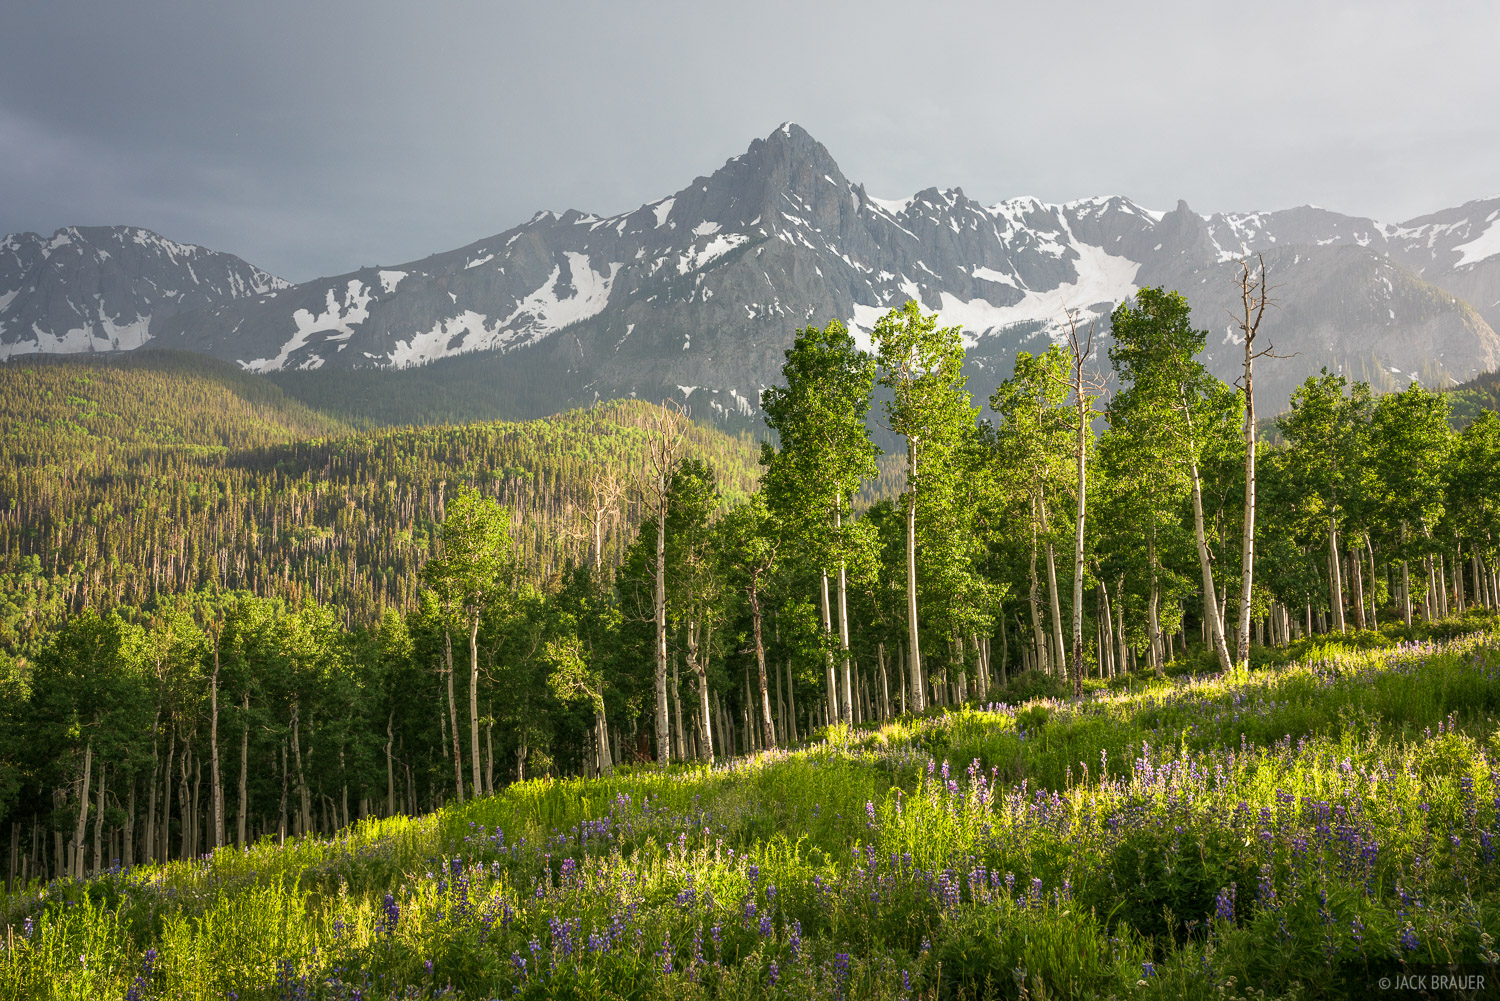 Colorado, S9, San Juan Mountains, Sneffels Range, aspens, lupine, wildflowers, photo